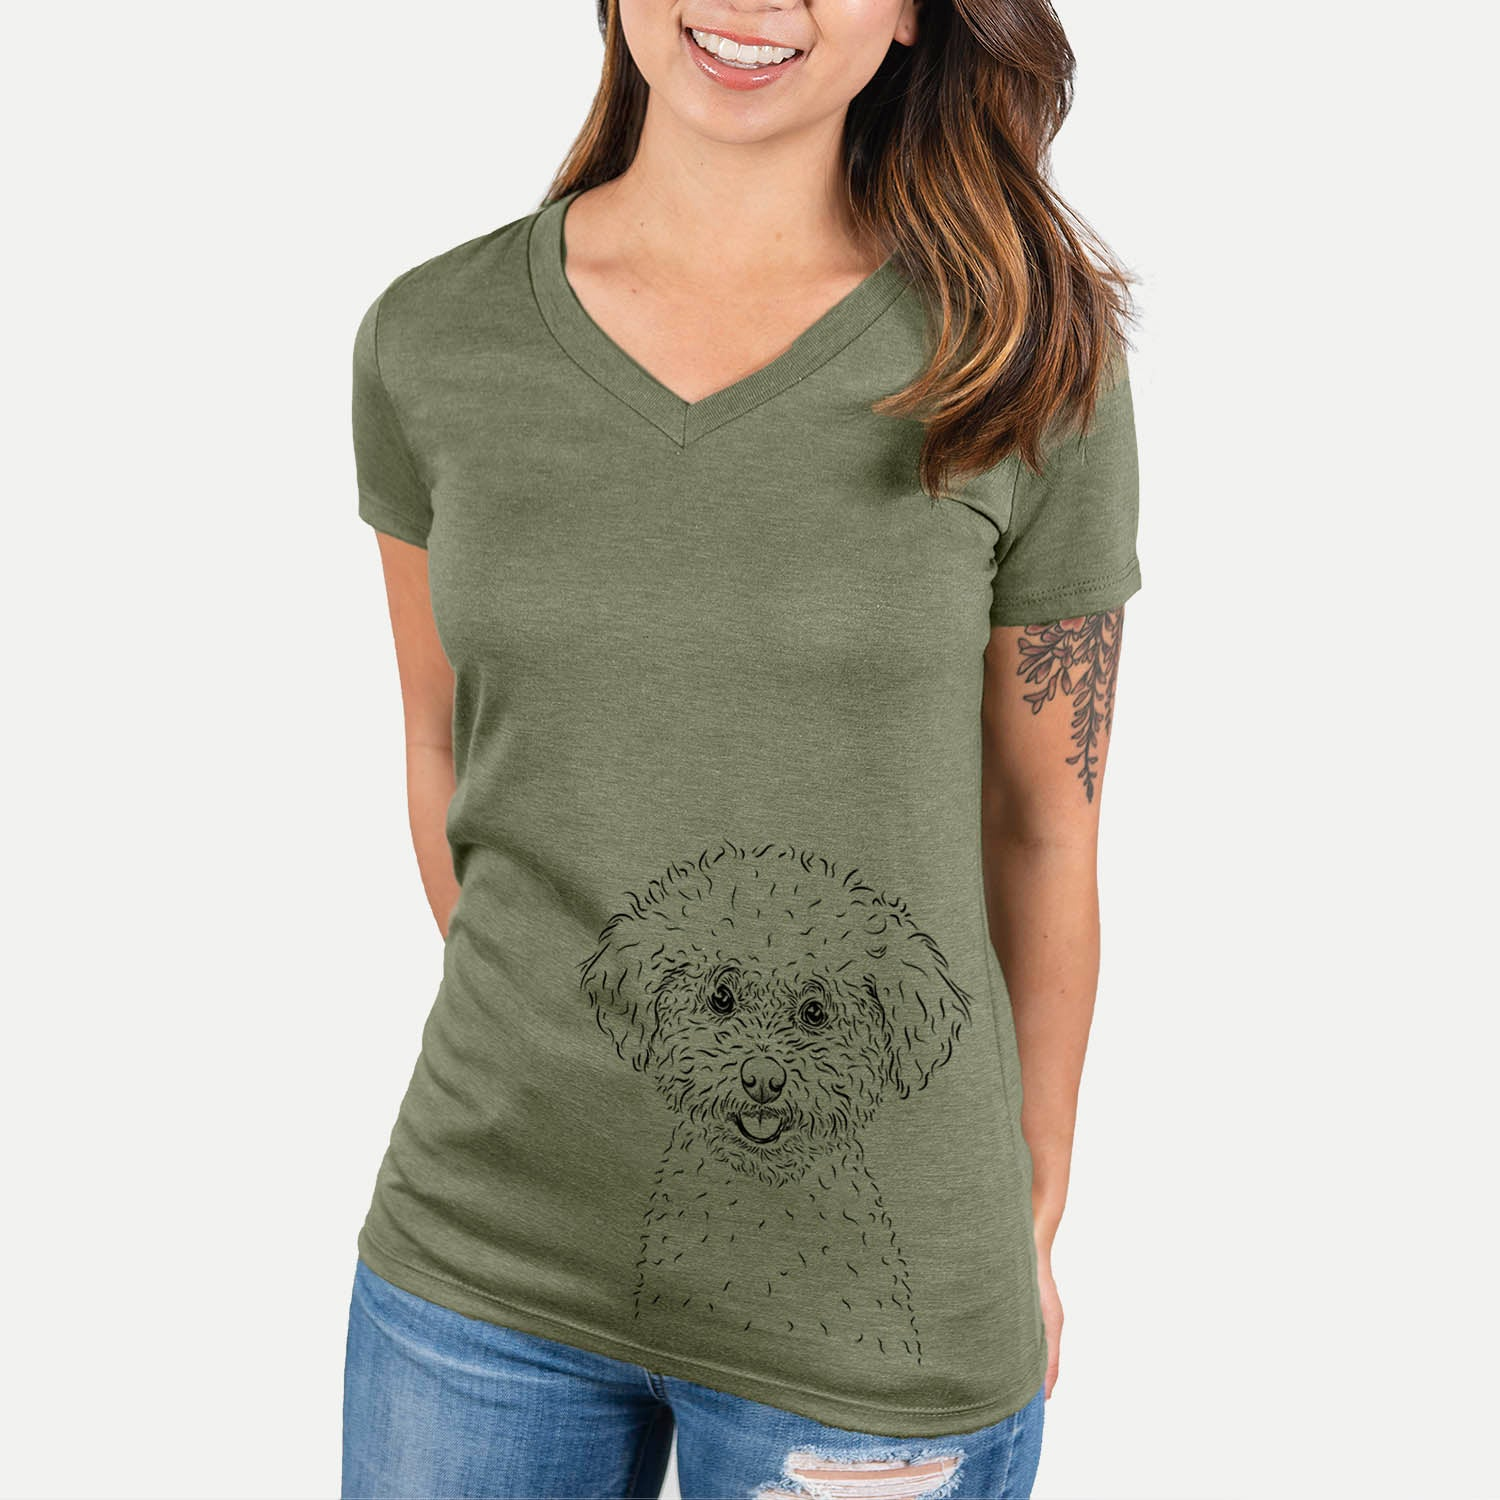 Mickey the Bichon Frise - Women's Modern Fit V-neck Shirt